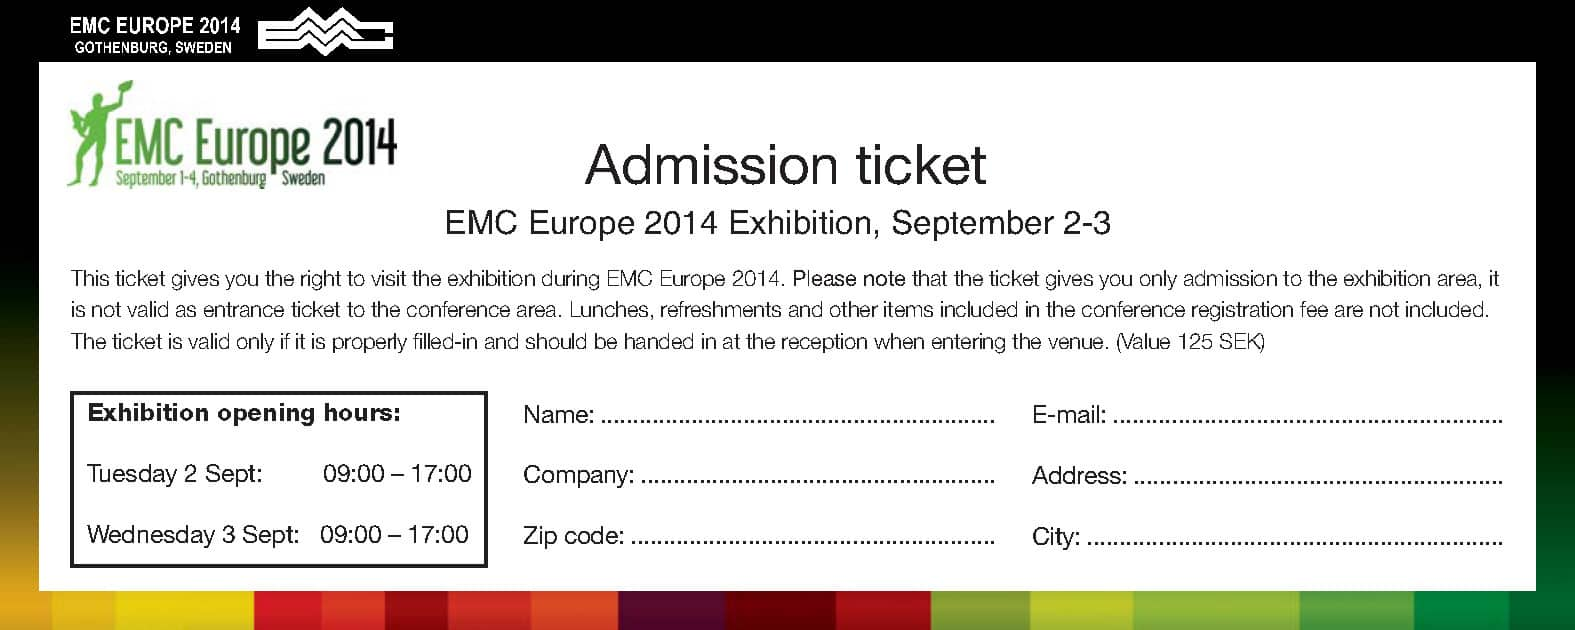 4 free admission ticket templates - word - excel